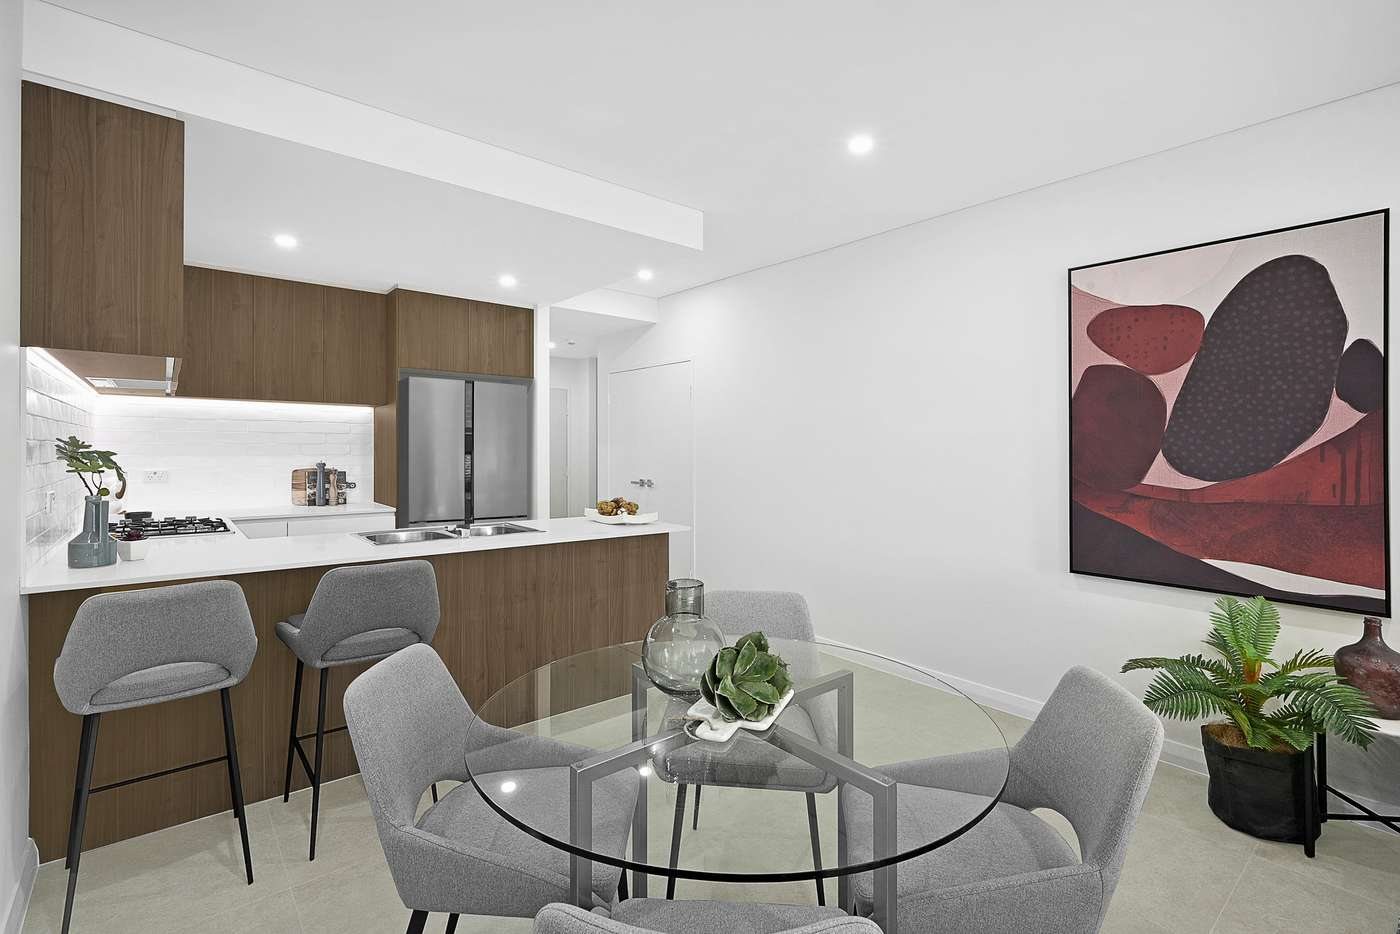 Fifth view of Homely apartment listing, 140 High Street, Penrith NSW 2750